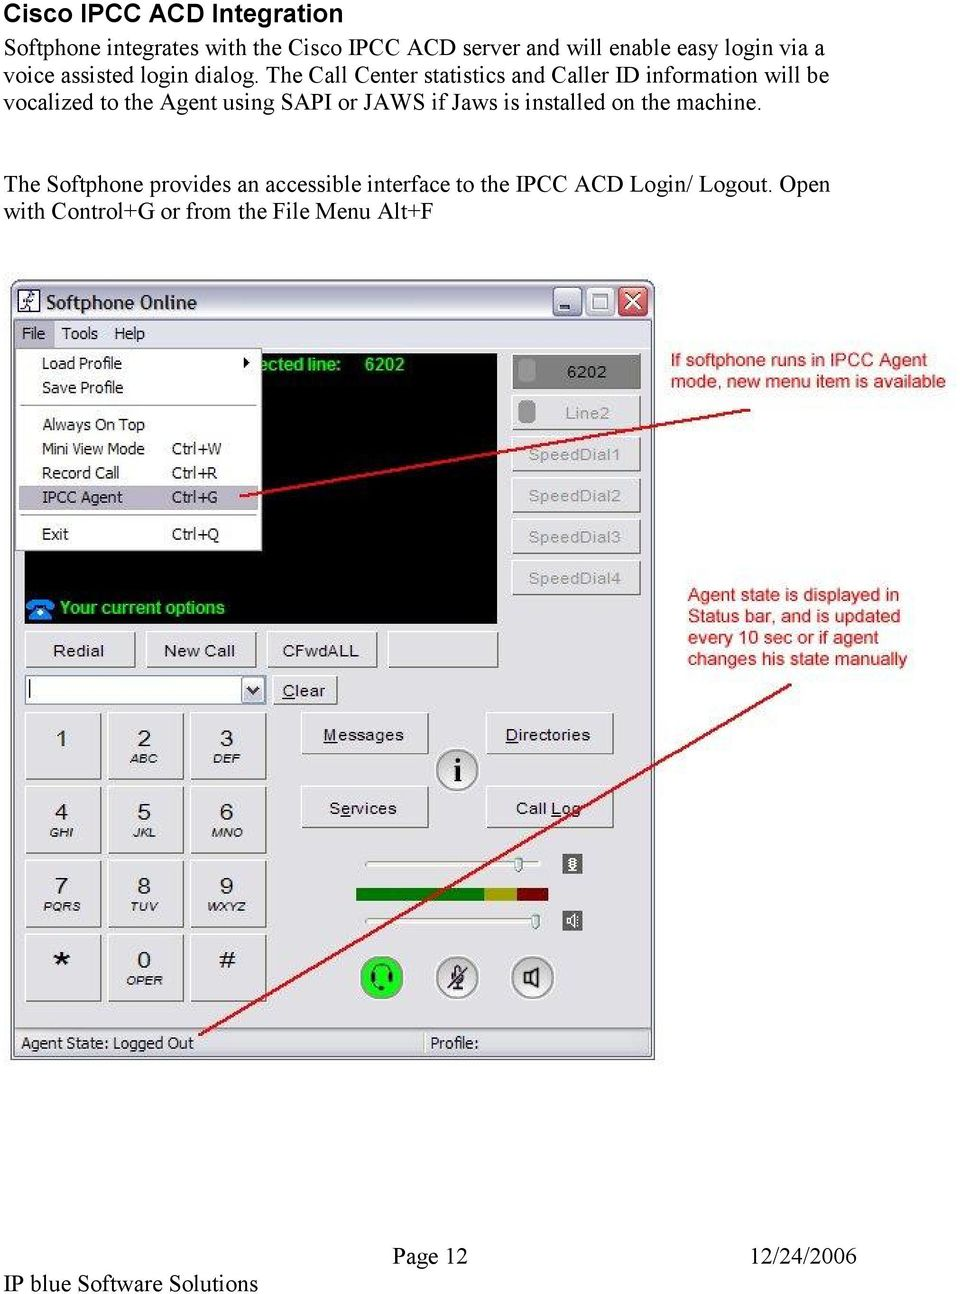 The Call Center statistics and Caller ID information will be vocalized to the Agent using SAPI or JAWS if